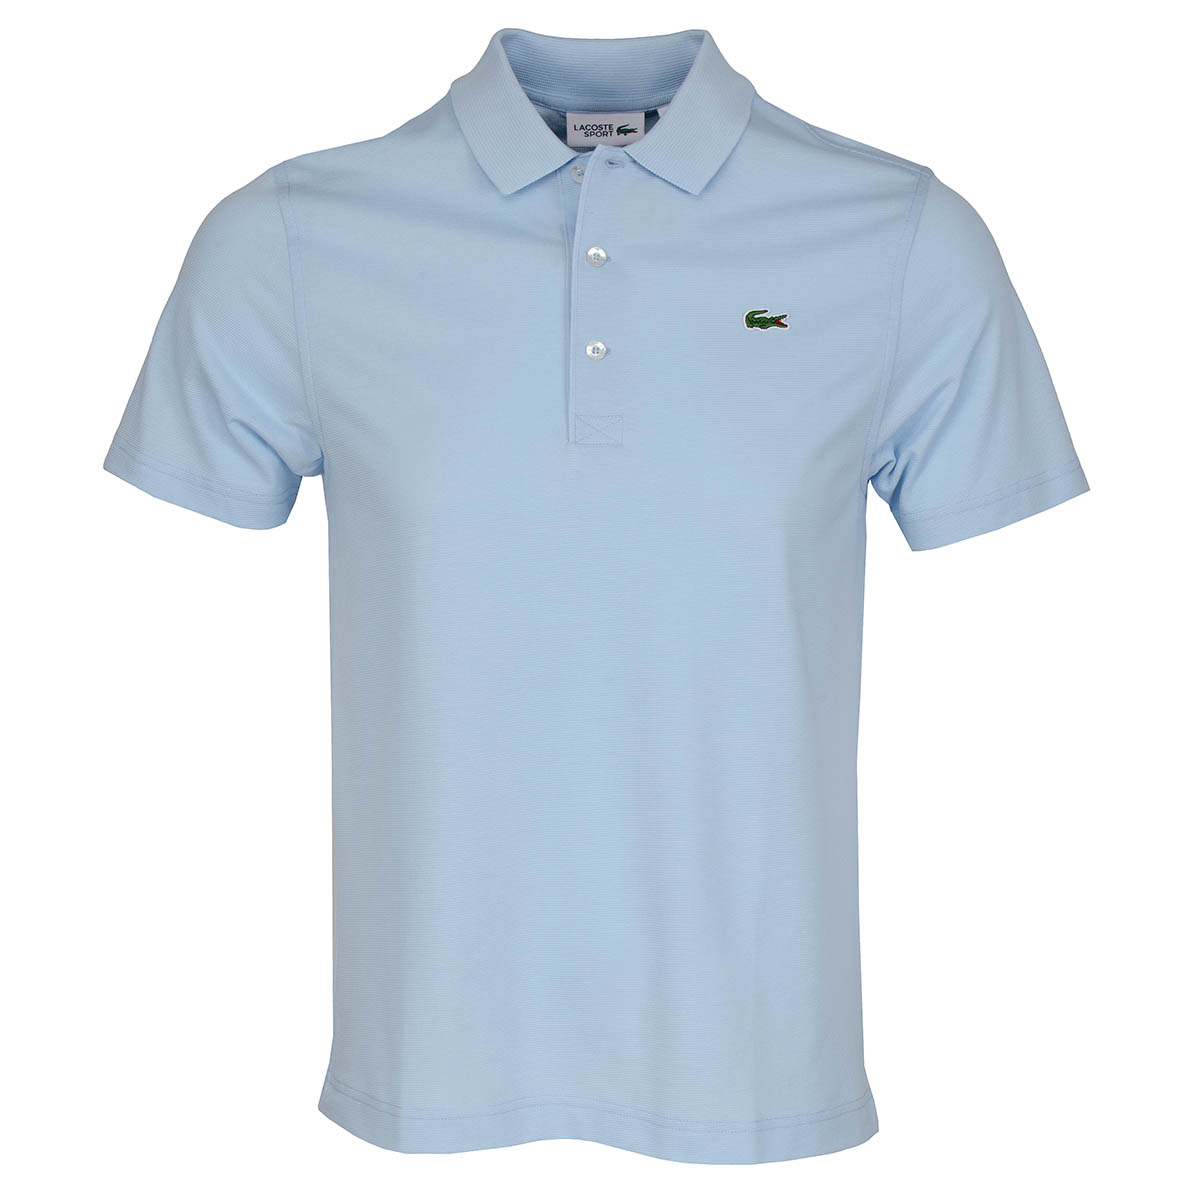 Lacoste sport polo shirt dream blue scottsdale golf - Lacoste poloshirt weiay ...